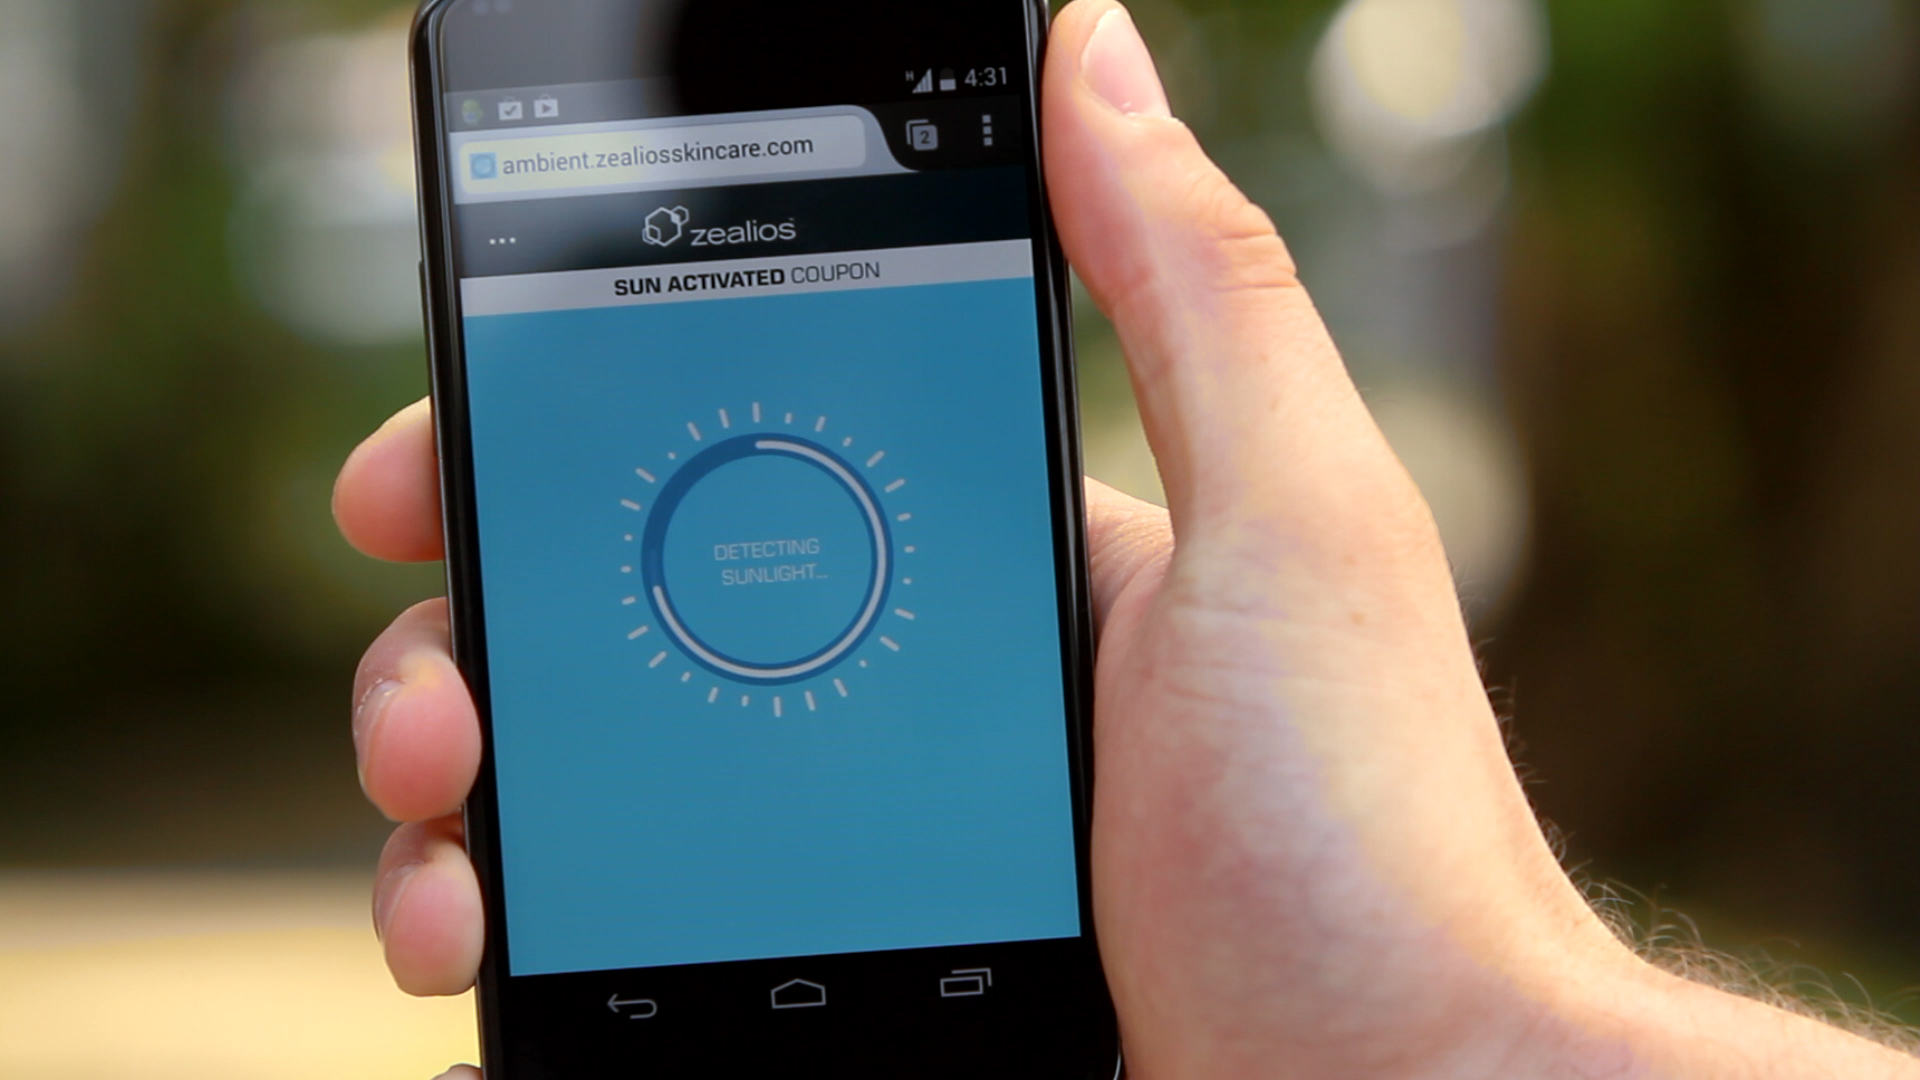 Zealios Creates Sunlight-Activated Digital Coupon to Promote Sunscreen